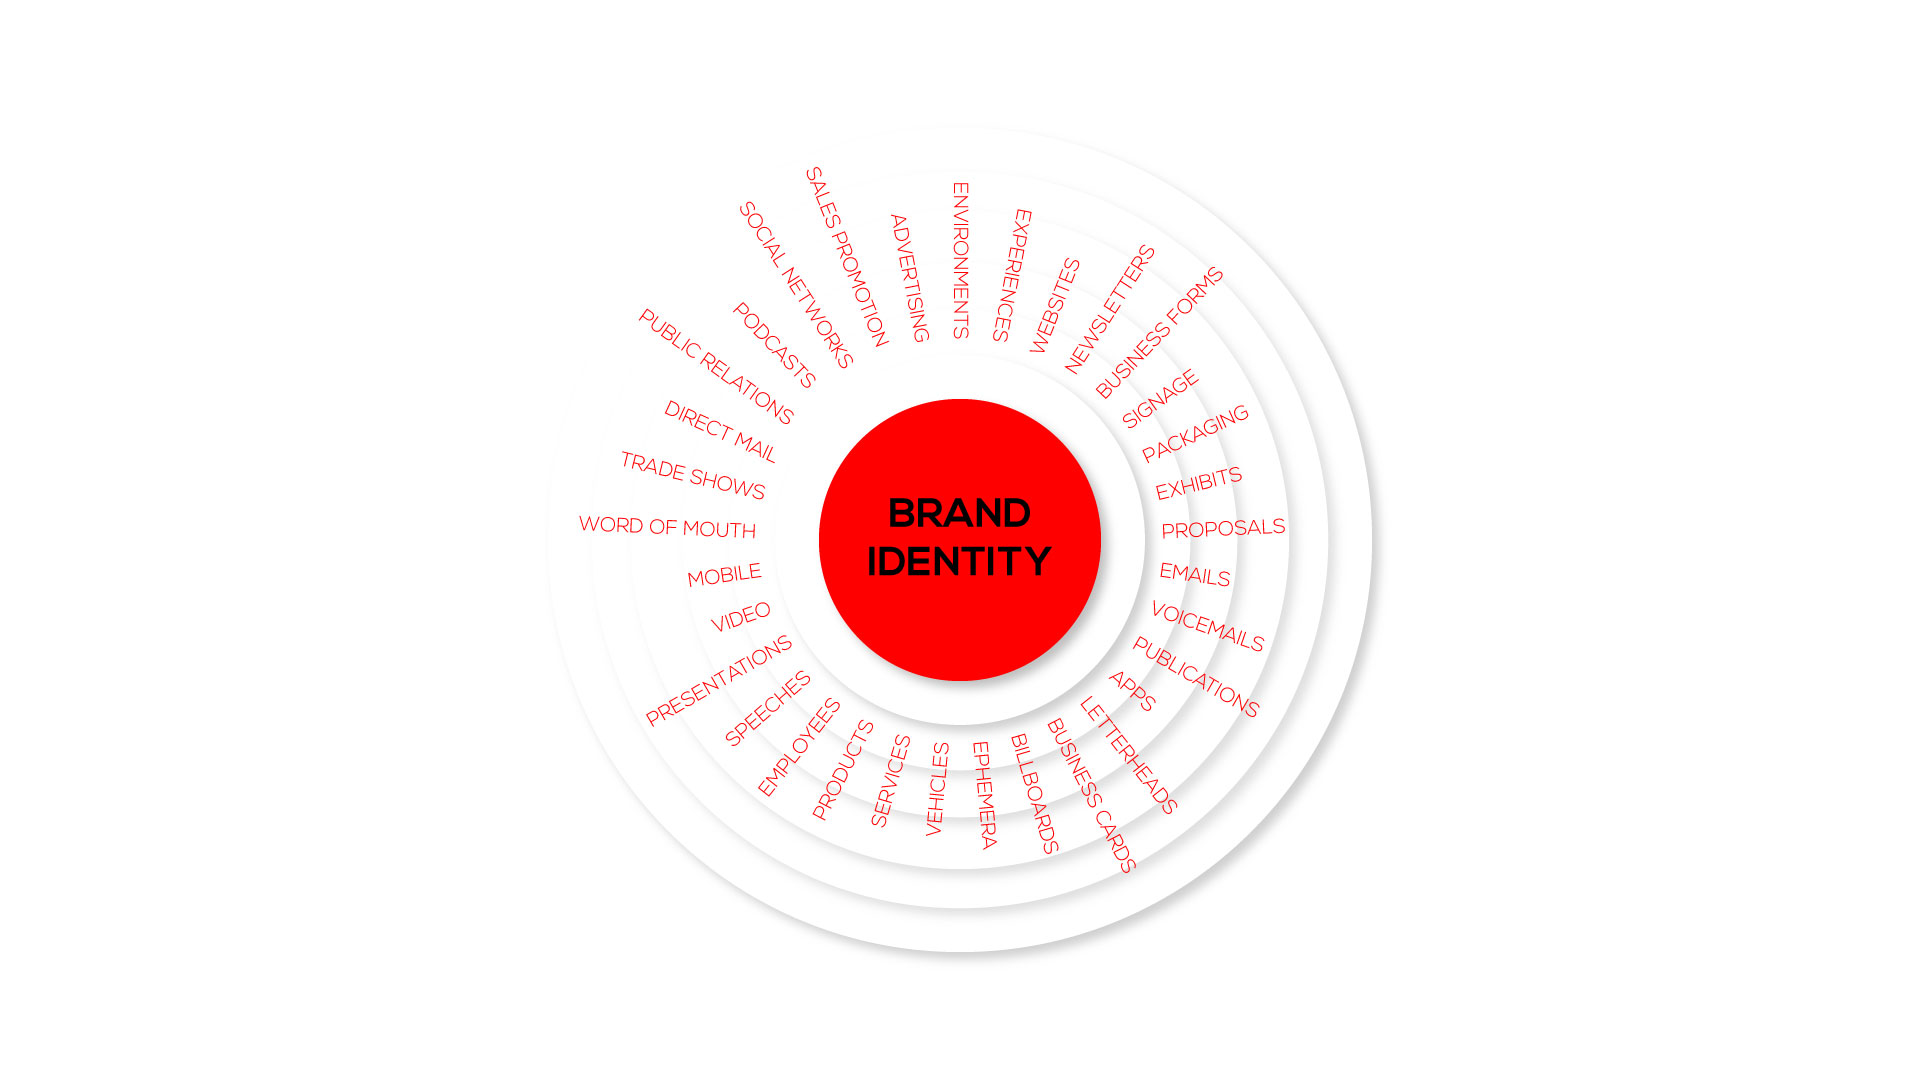 BRAND IDENTITY TOUCHPOINTS - RITHVIC EMMILA